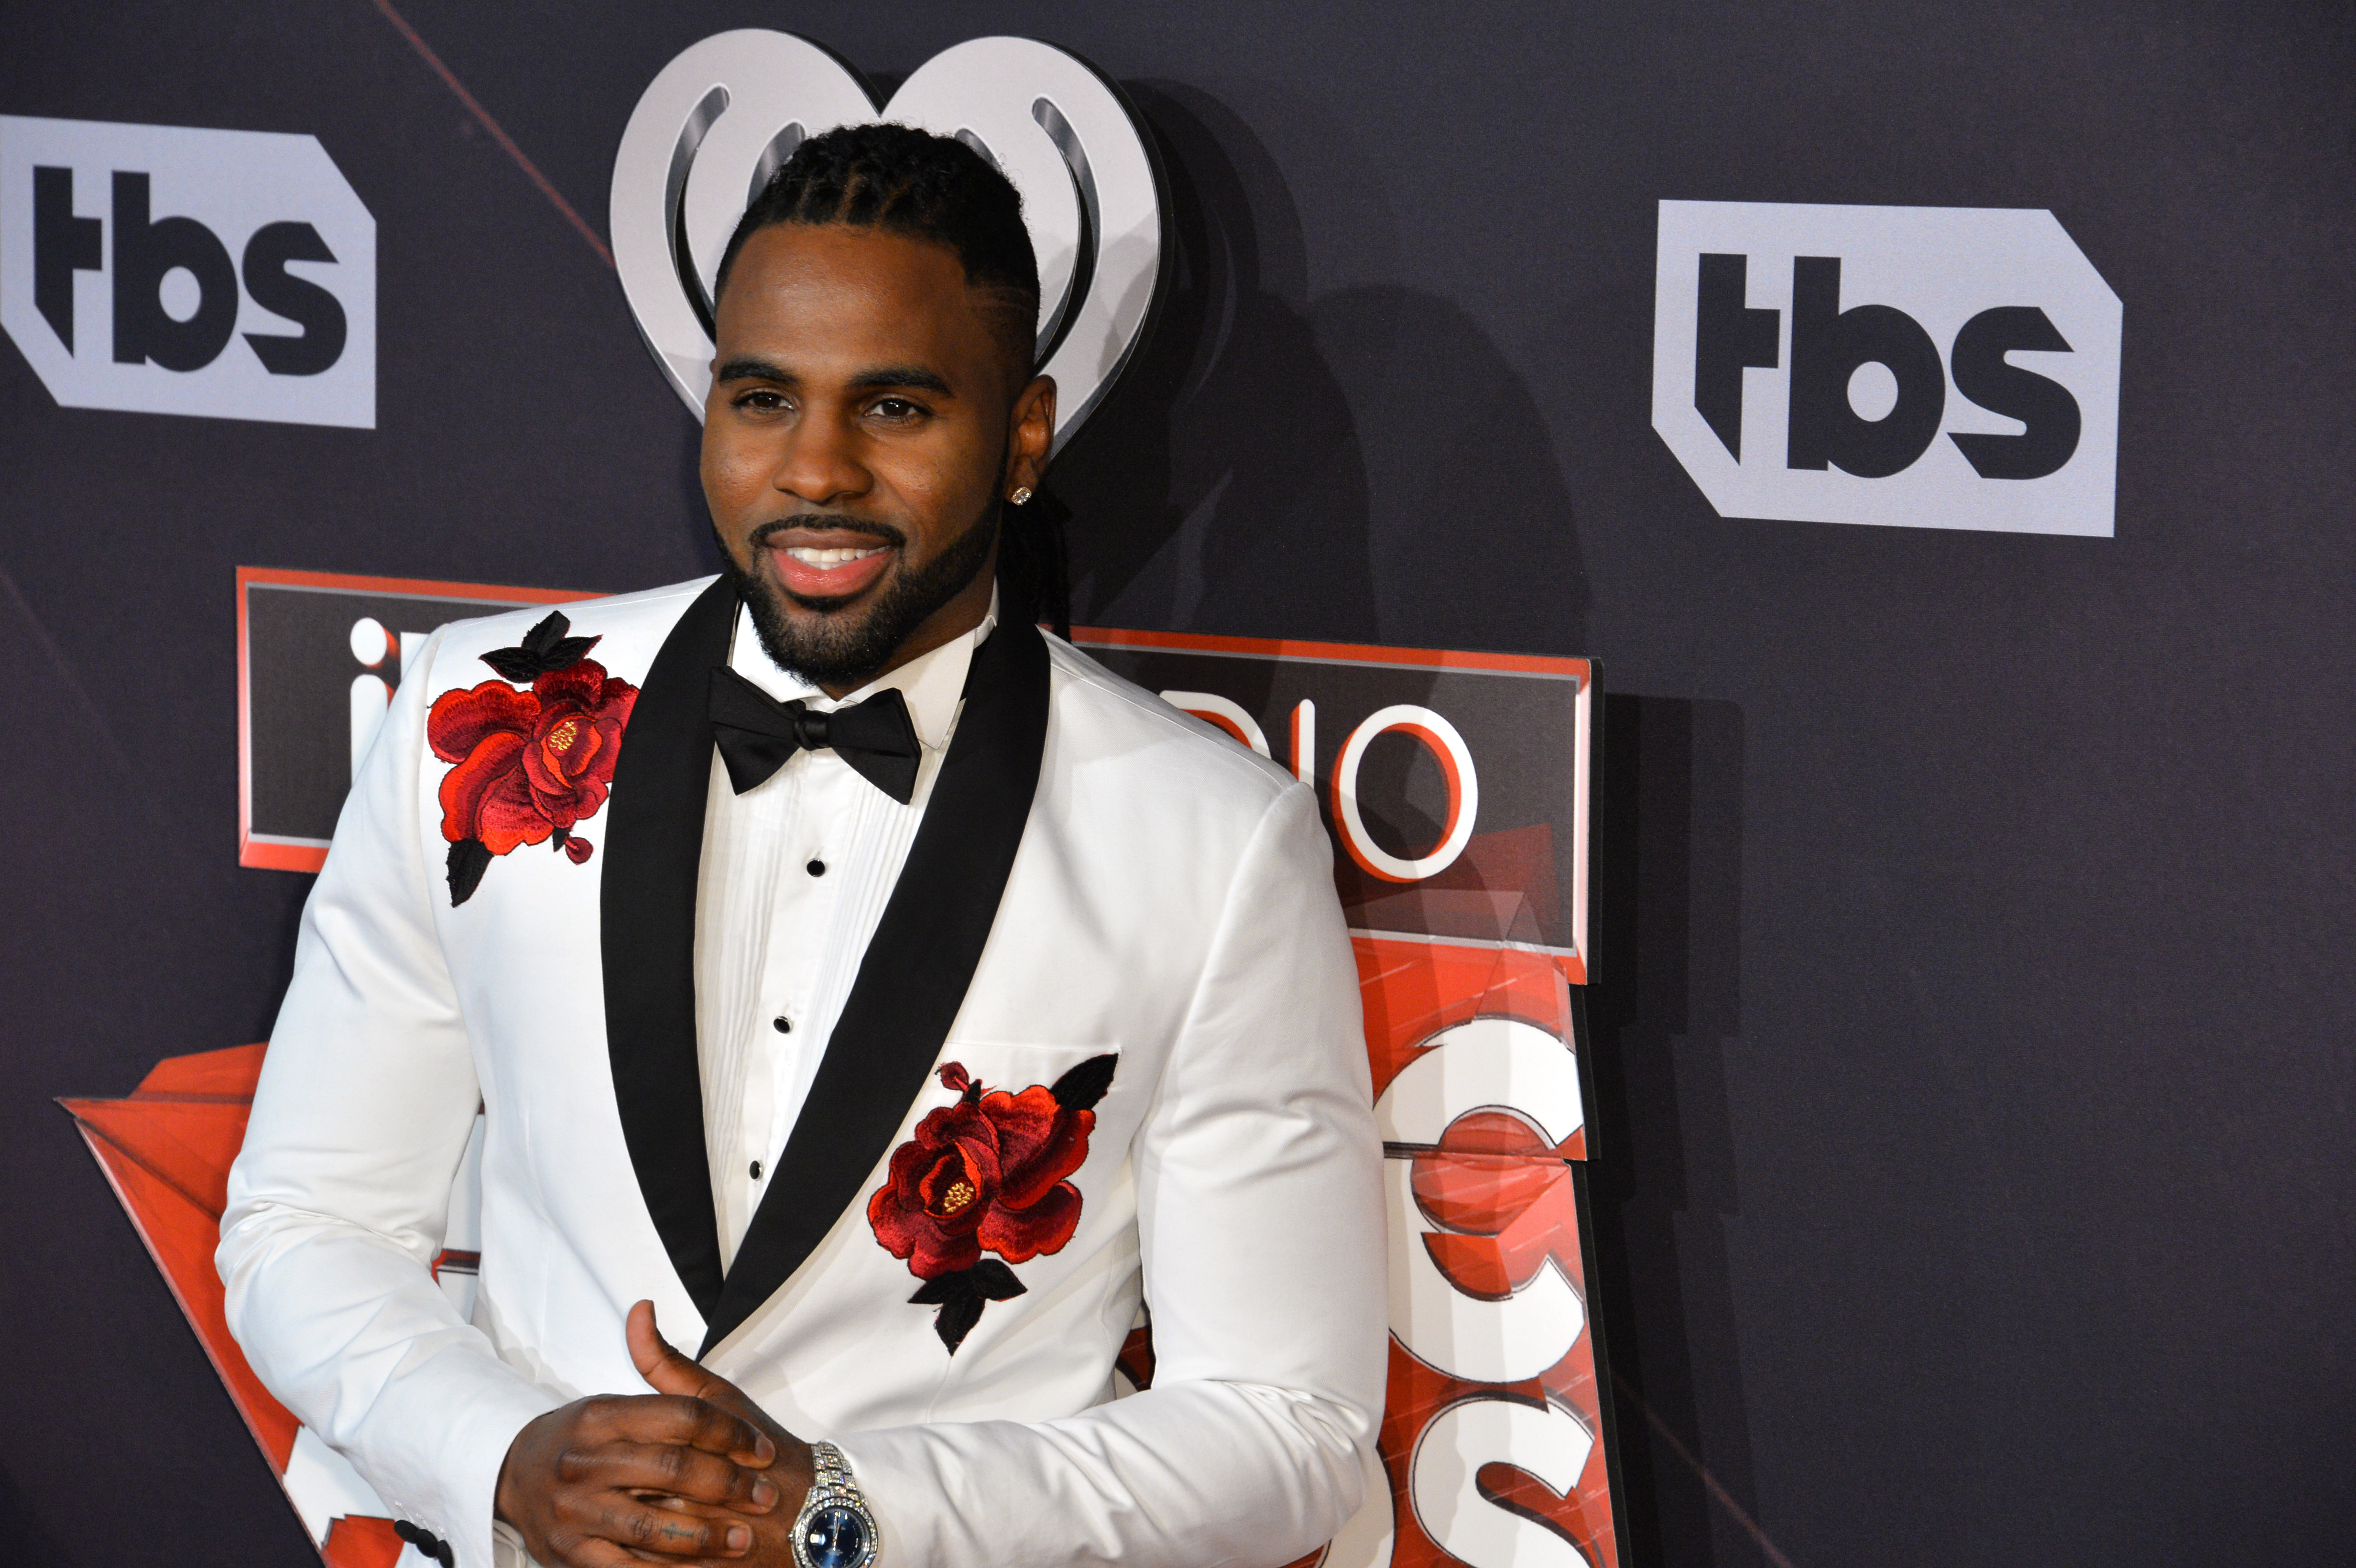 Jason Derulo at the 2017 iHeartRadio Music Awards at The Forum, Los Angeles